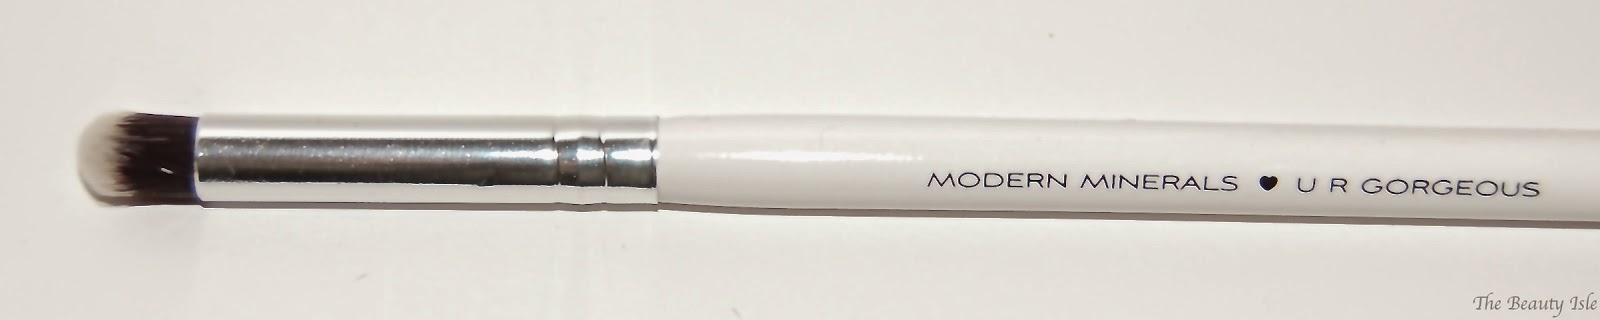 Modern Minerals Duo Fiber Mini Round Brush